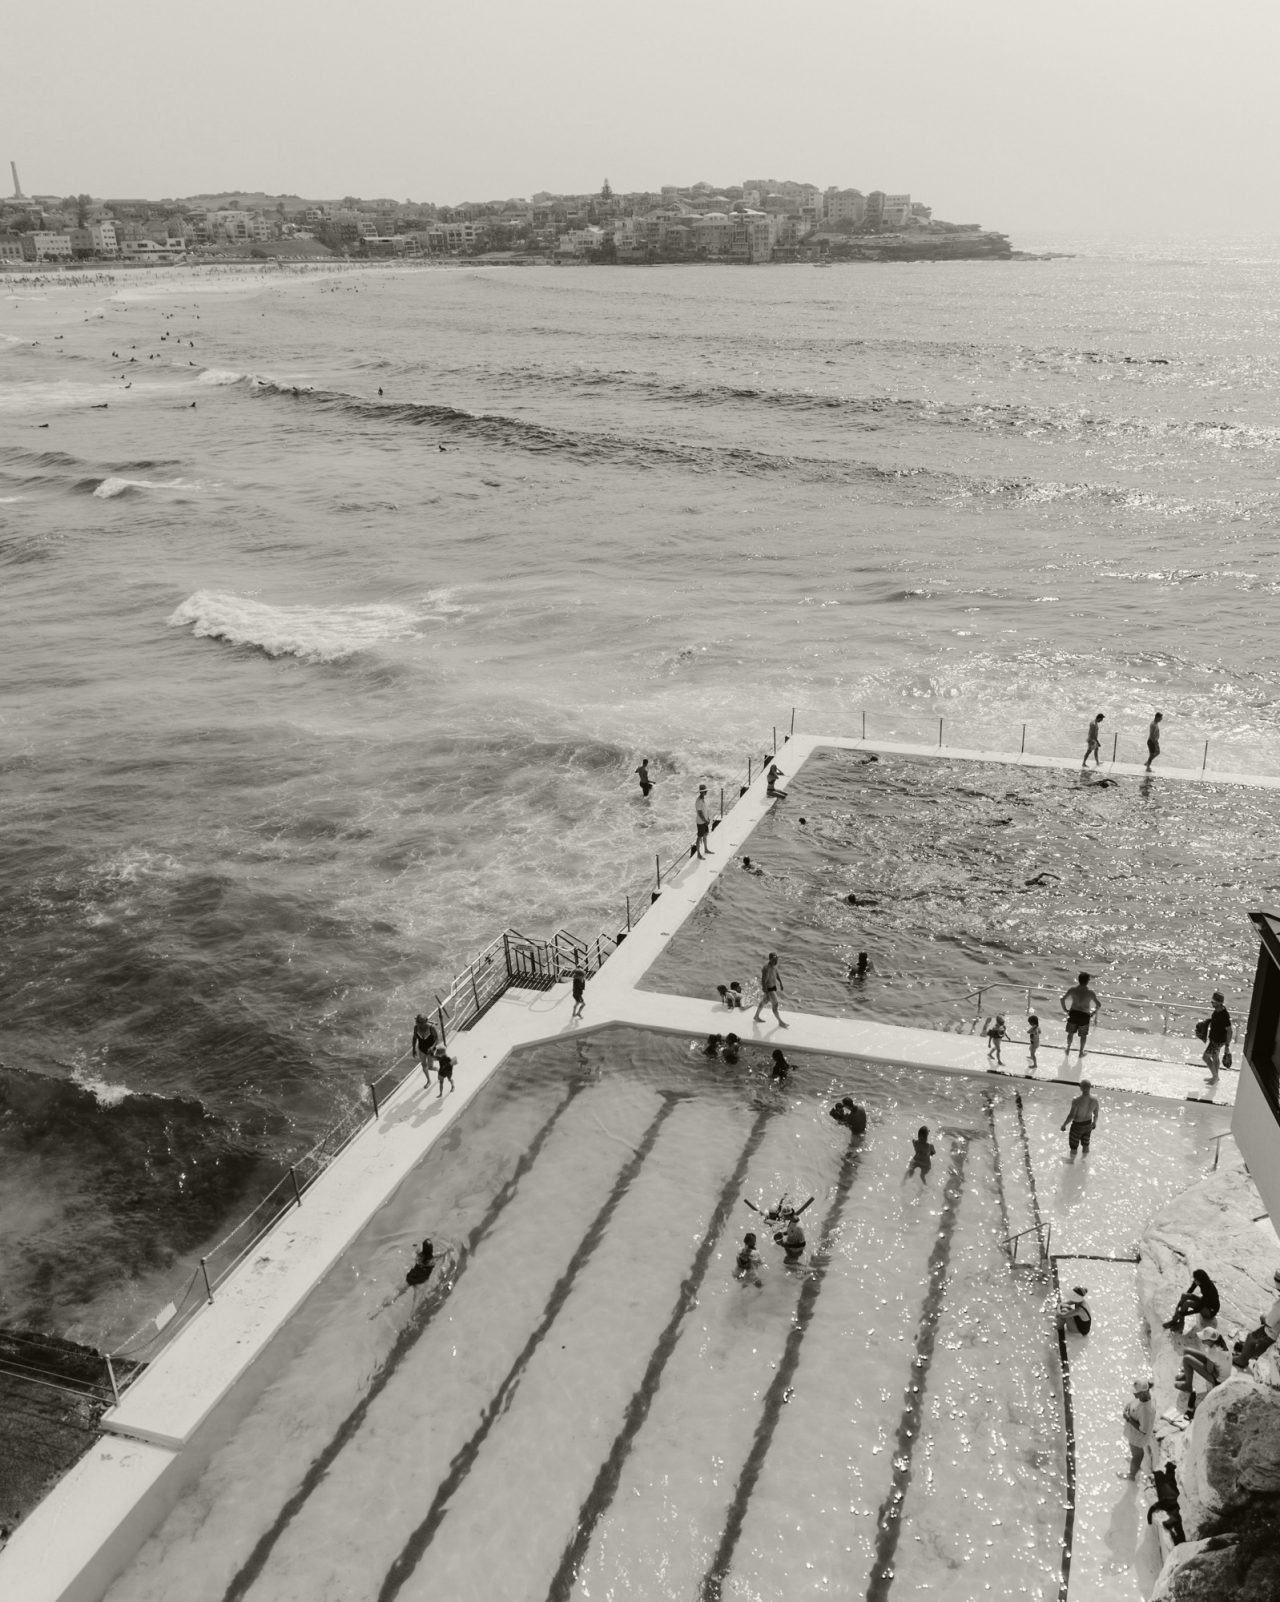 Black and white image of people swimming at a public beach in Sydney